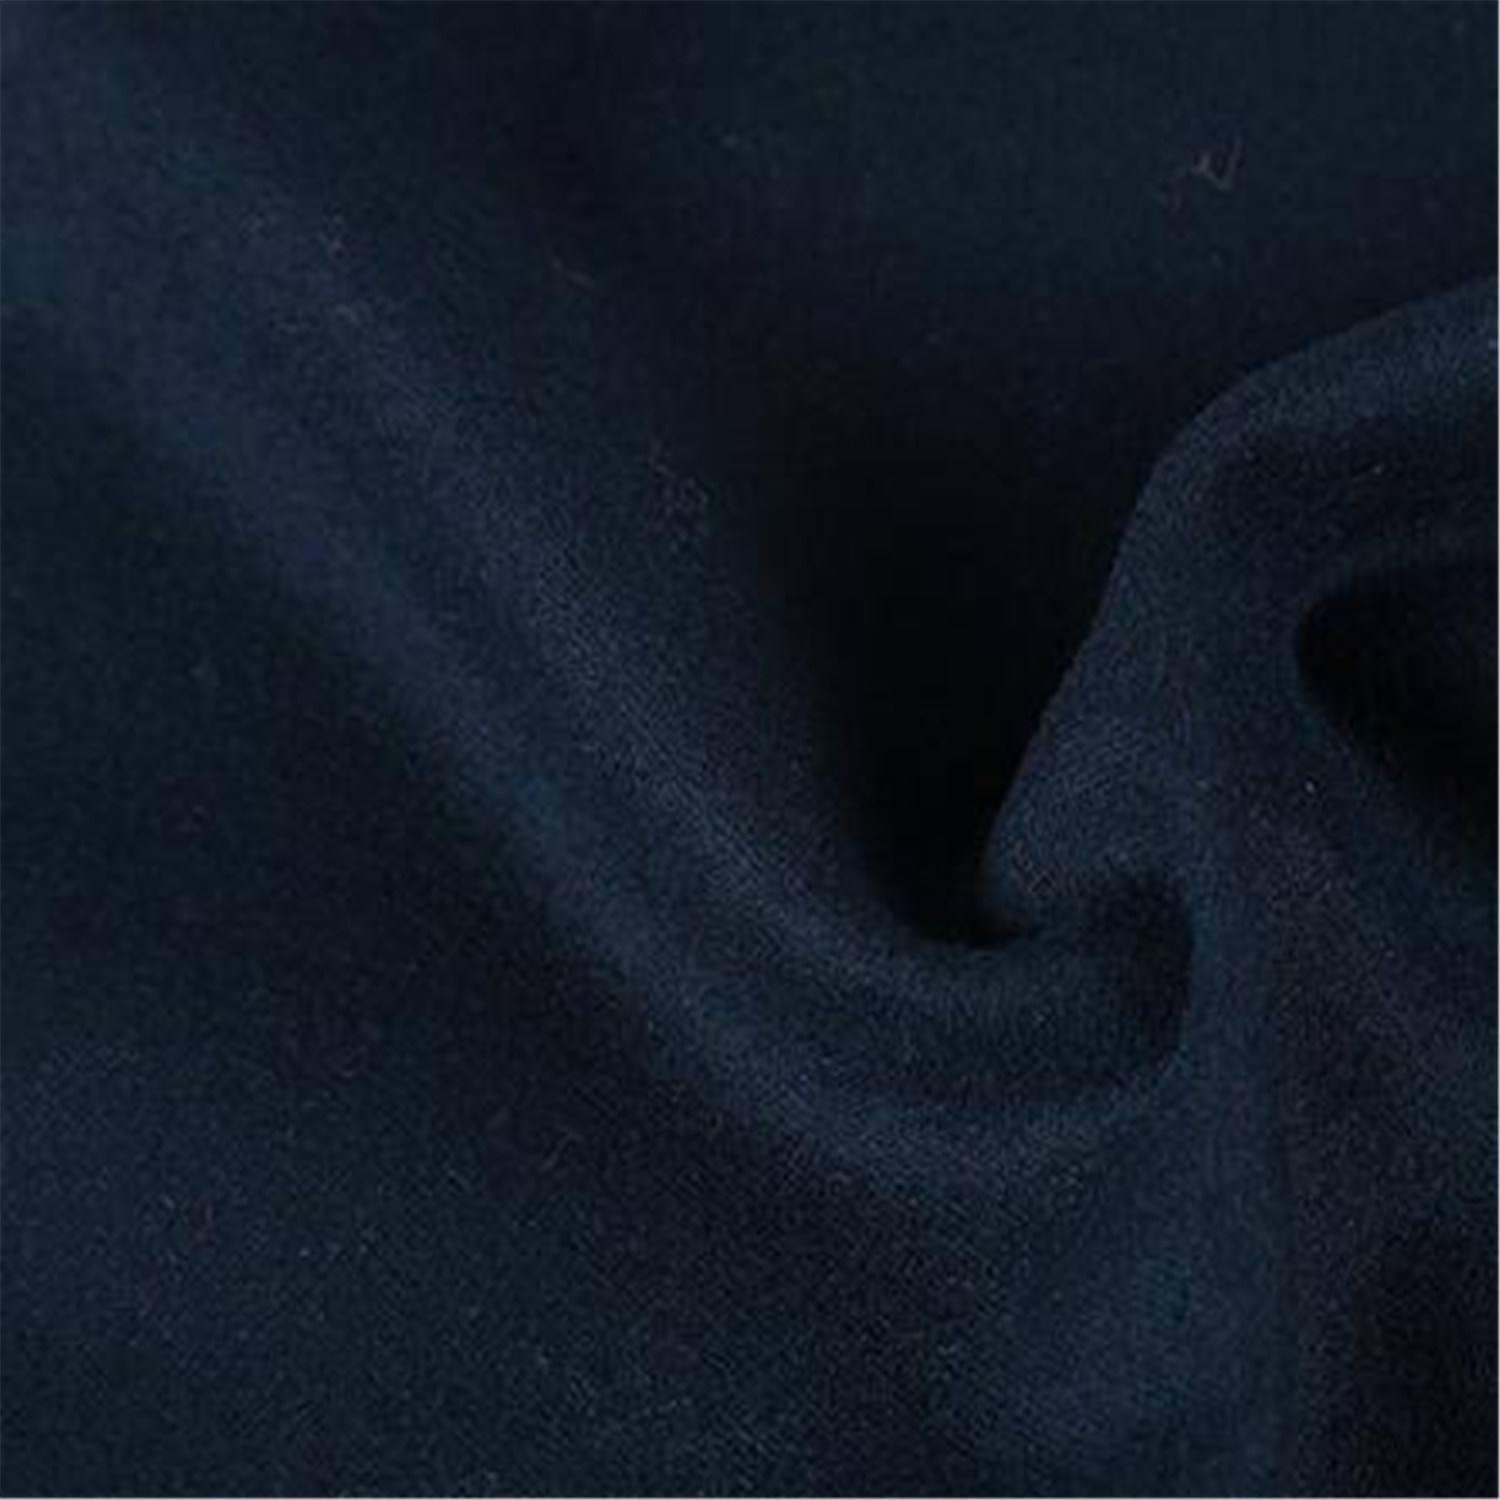 Solid Flannel Fabric, Suit Fabric, Garment Fabric